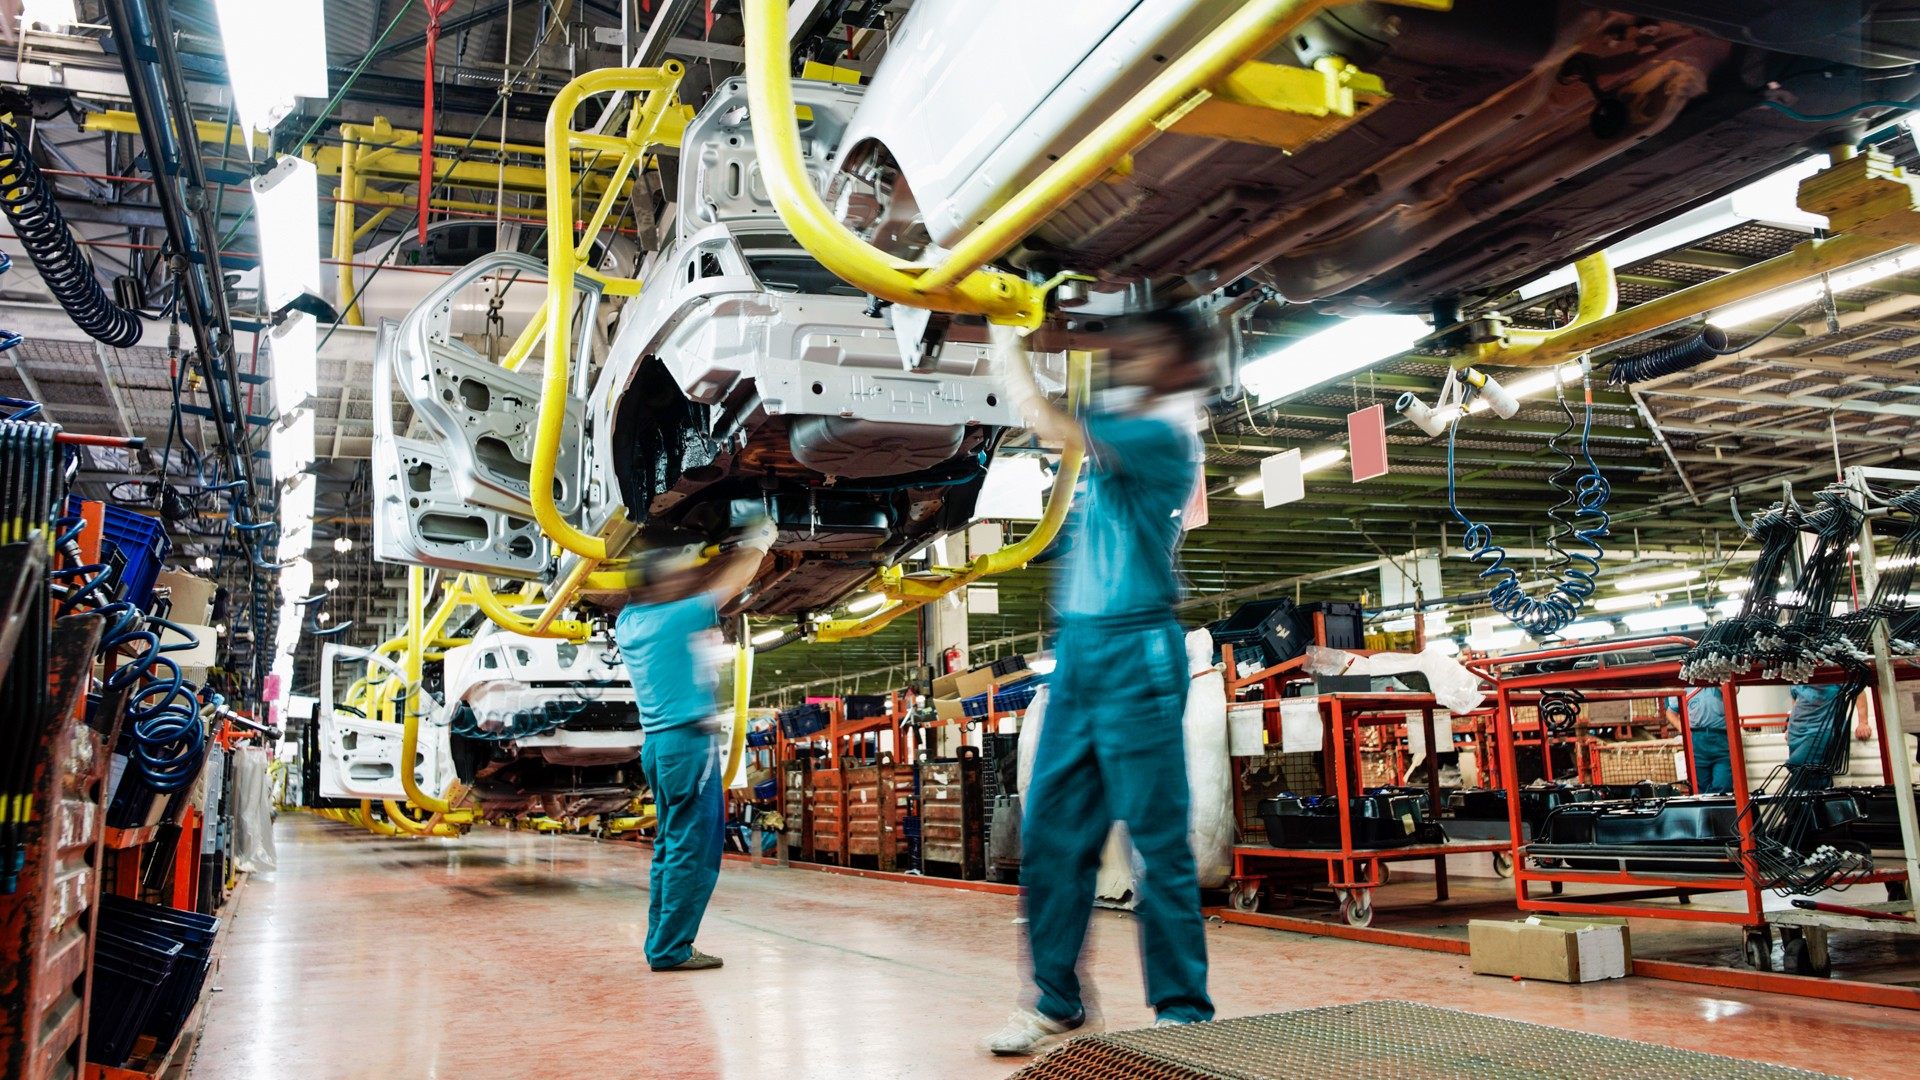 Two workers wearing green shirts and blue pants work underneath a car in an automobile factory.